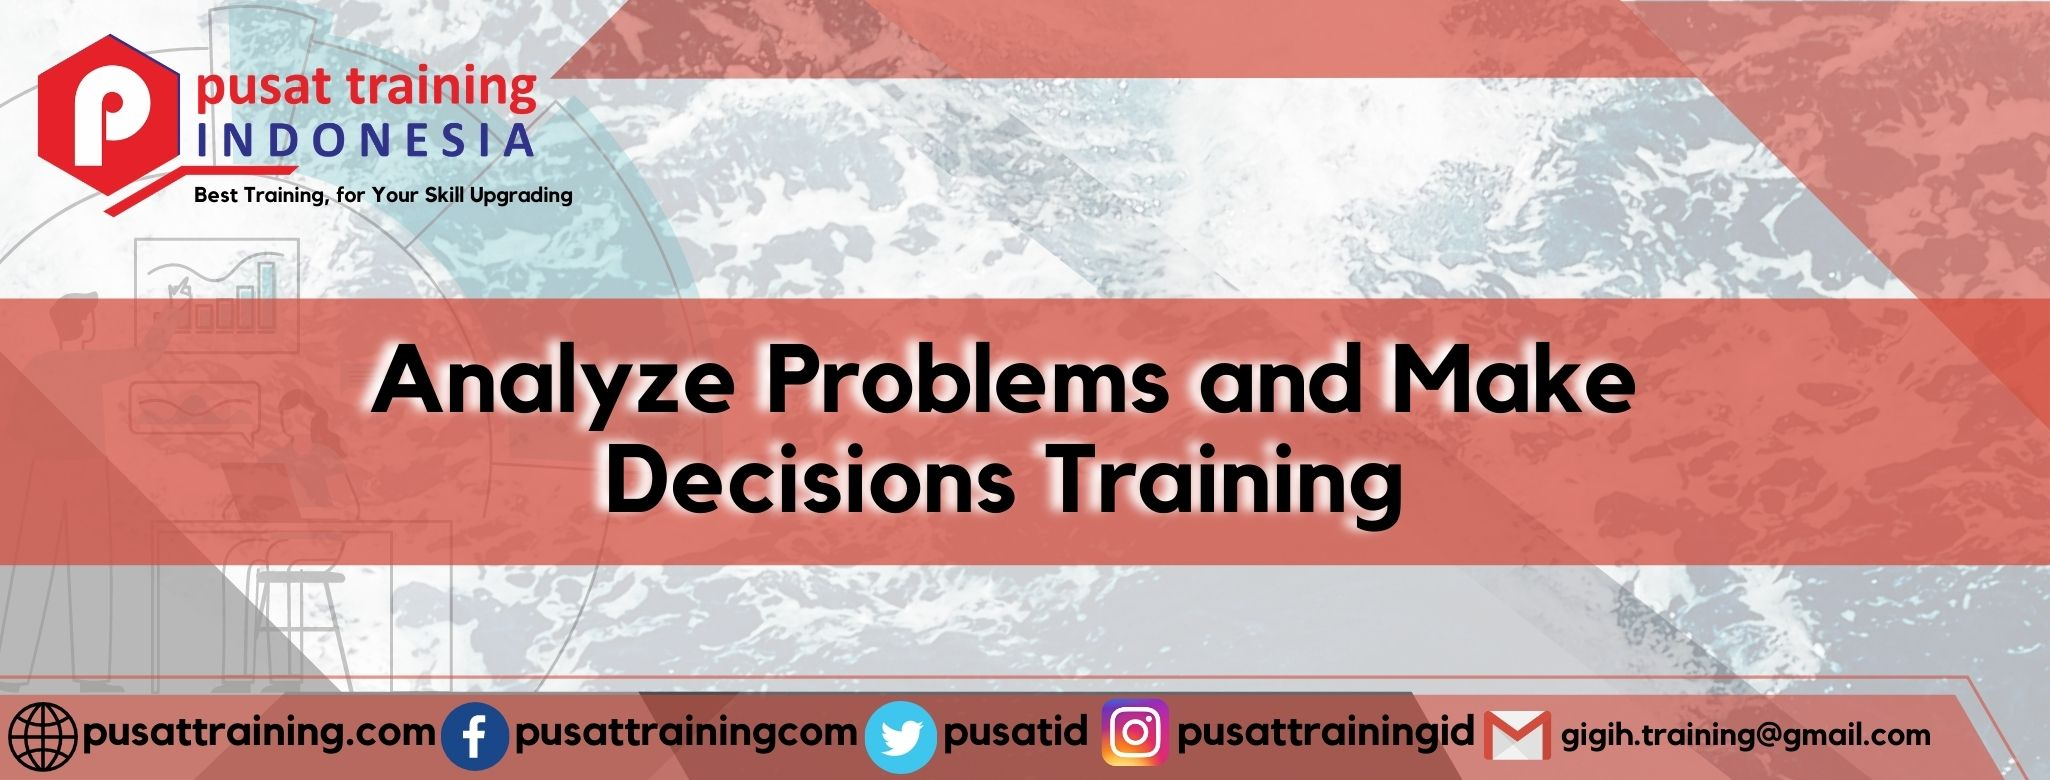 Analyze Problems and Make Decisions Training